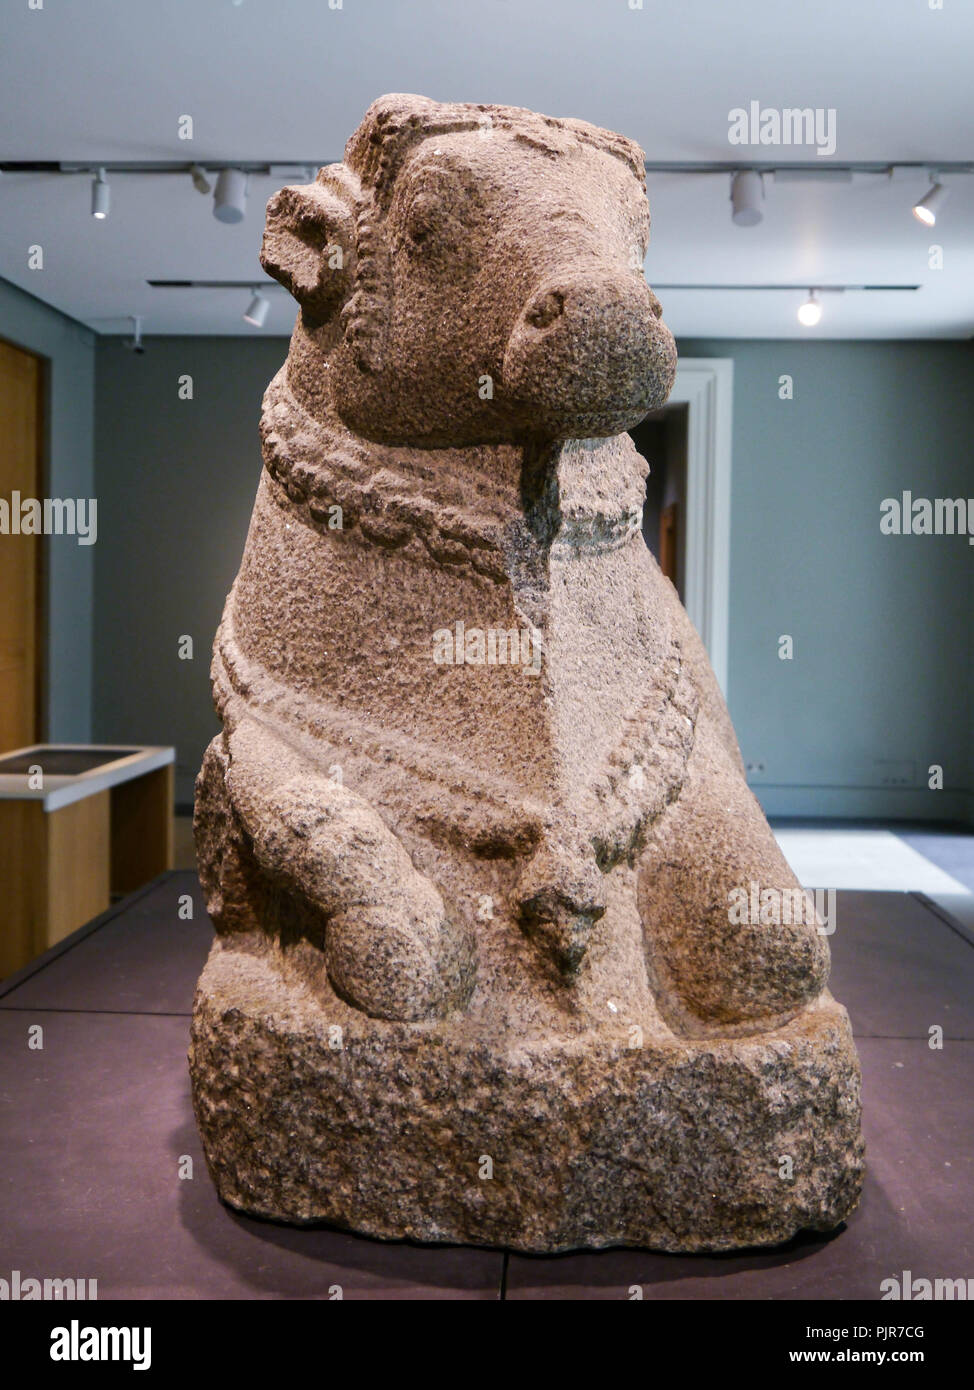 A sculpture of the humped bull Nandi from the 16th century, on display in the British Museum, London, England - Stock Image